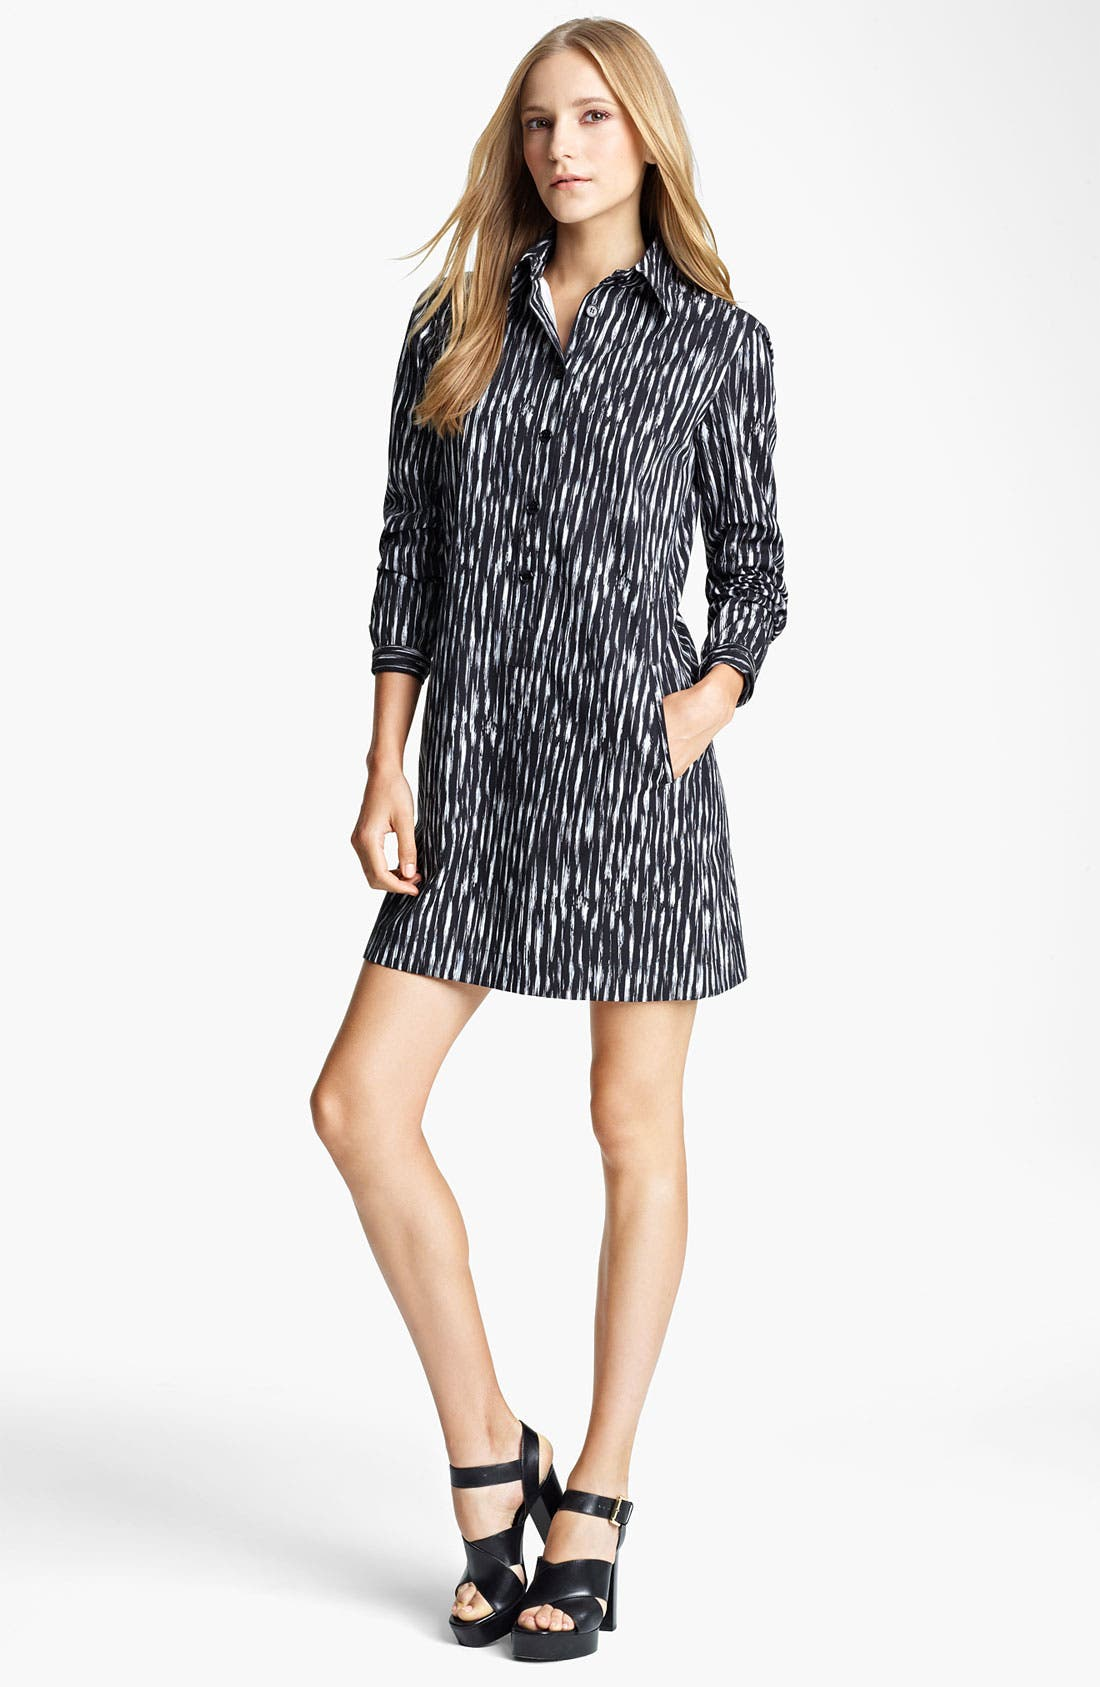 Alternate Image 1 Selected - Michael Kors Ikat Print Poplin Tunic Dress